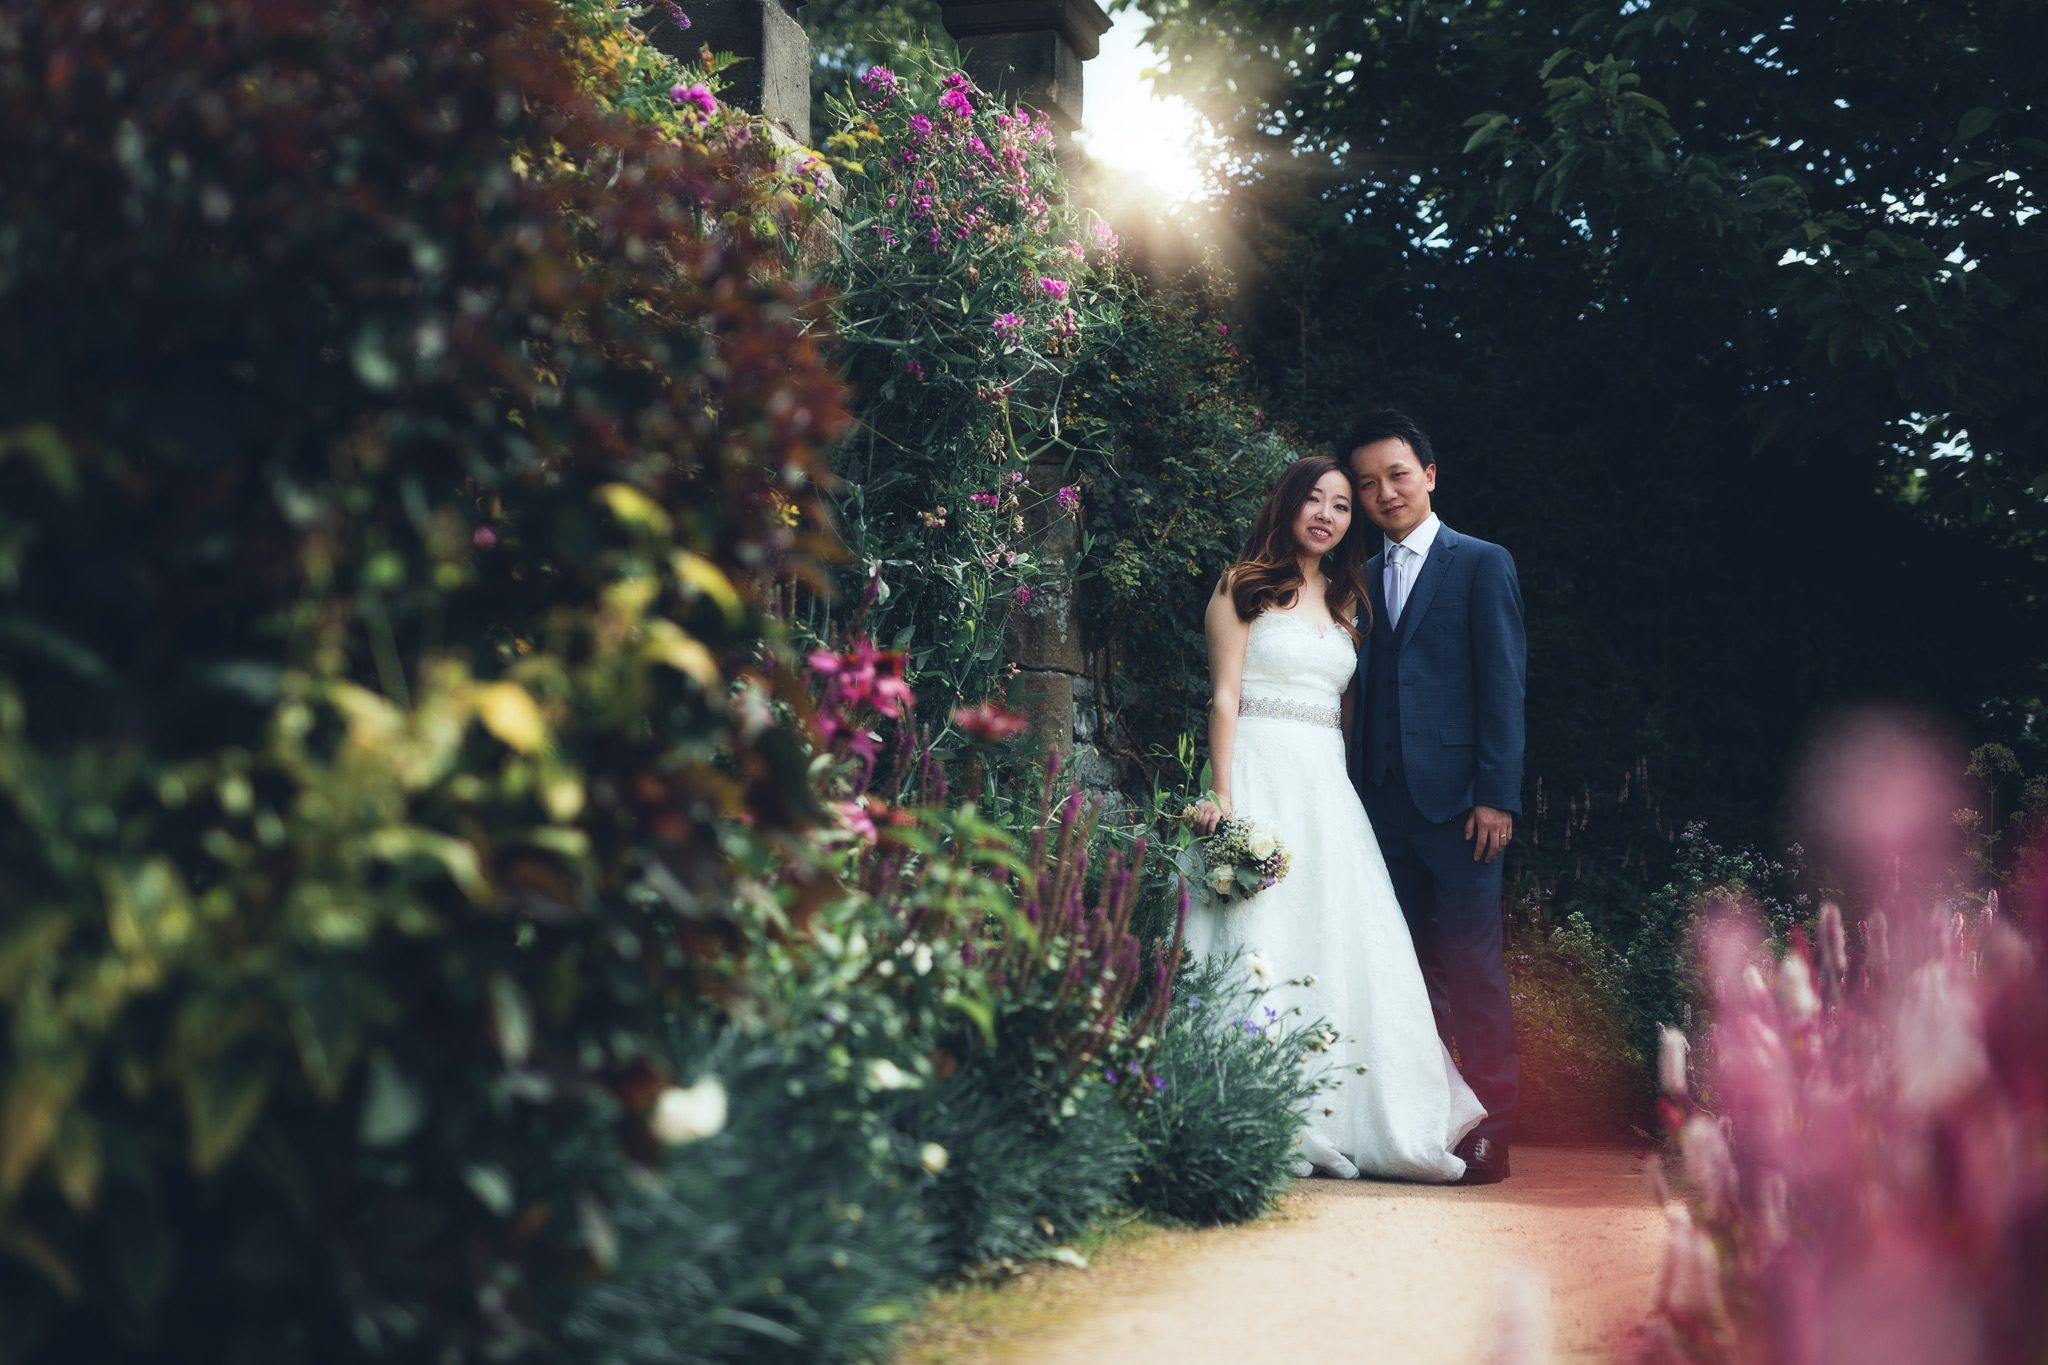 Summer Wedding at Haddon Hall, Bakewell - Xianxi and Lufei In the Beautiful Gardens